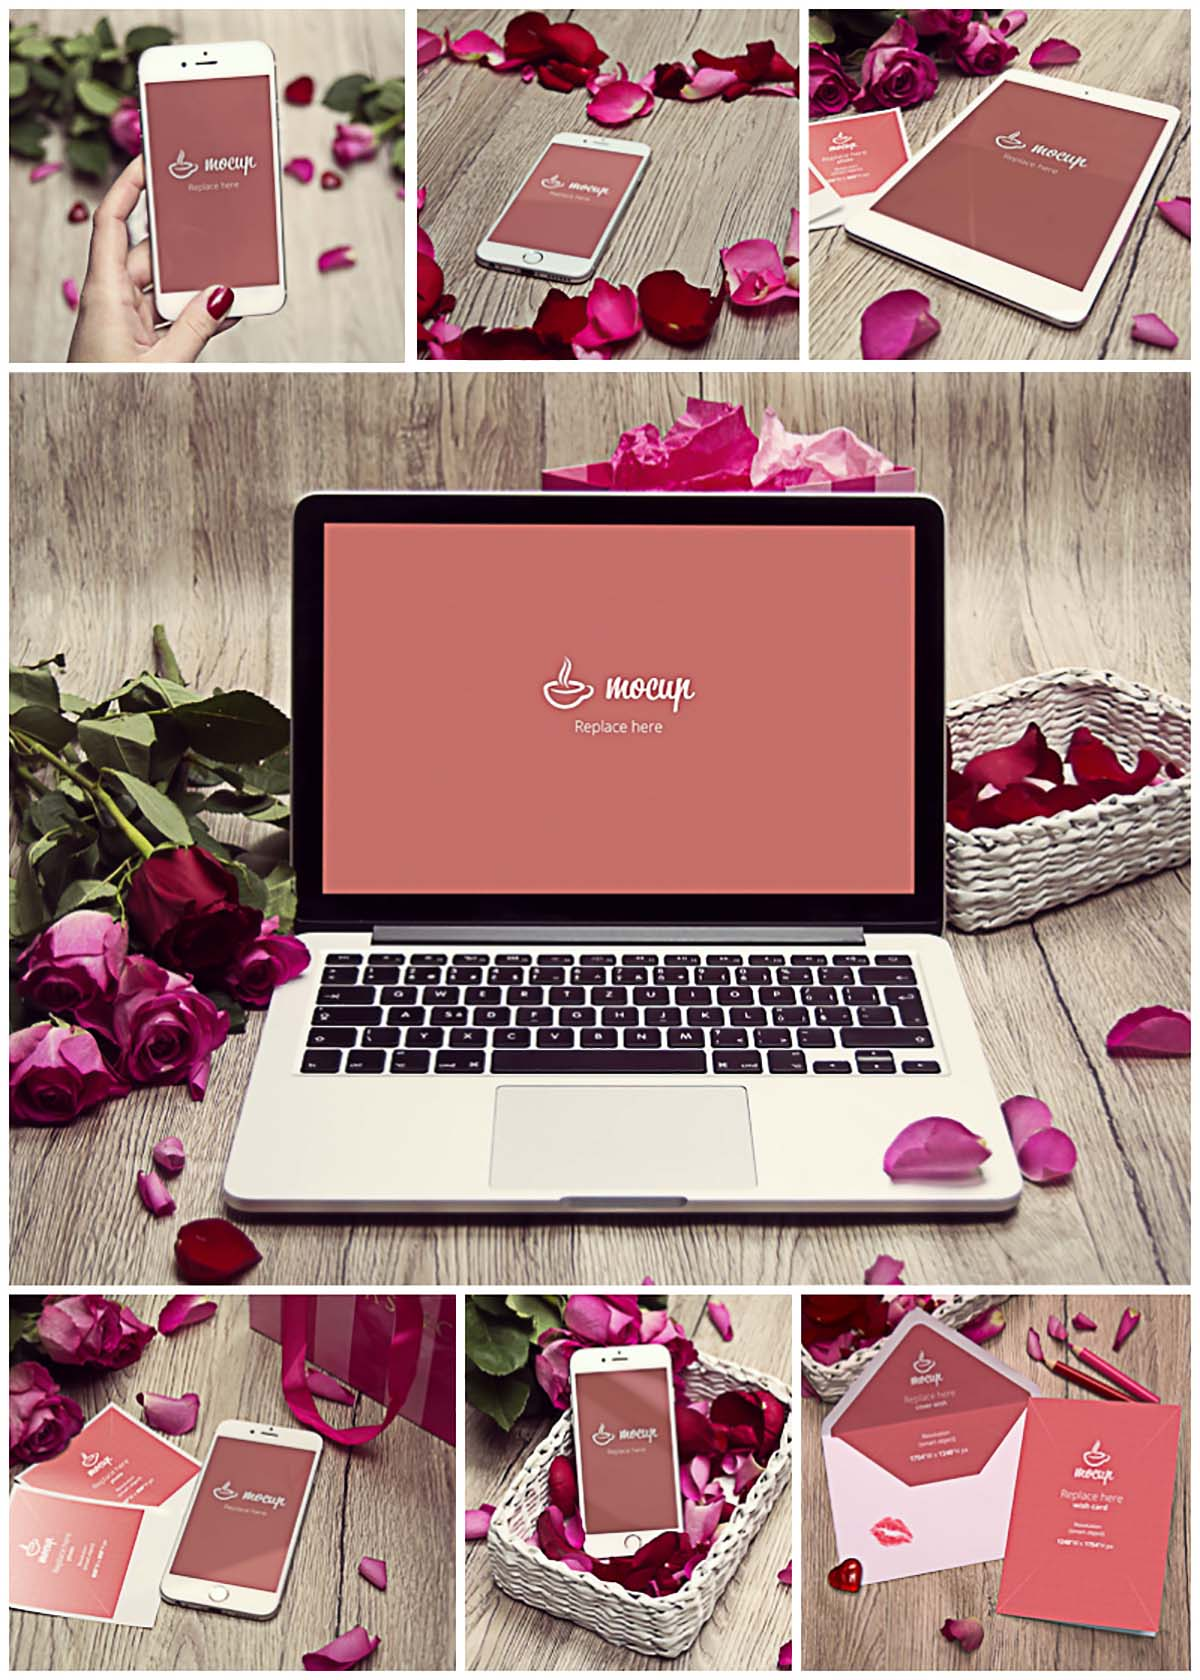 IPhone 6 Valentine's Day mockup set